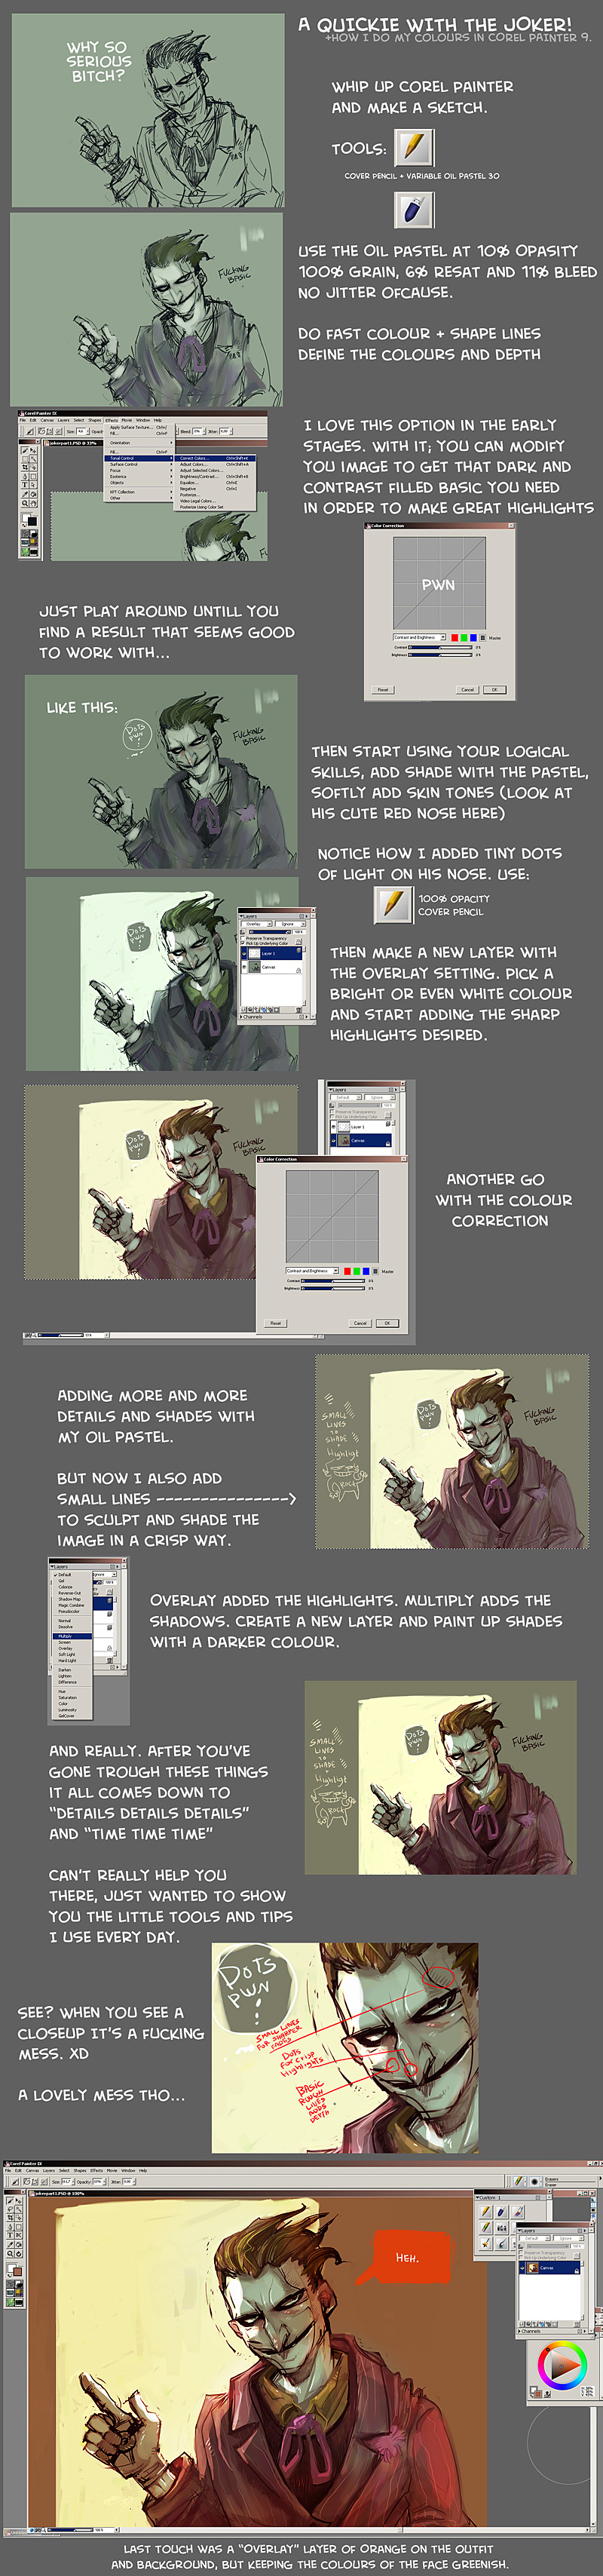 A quickie with the joker by Fealasy